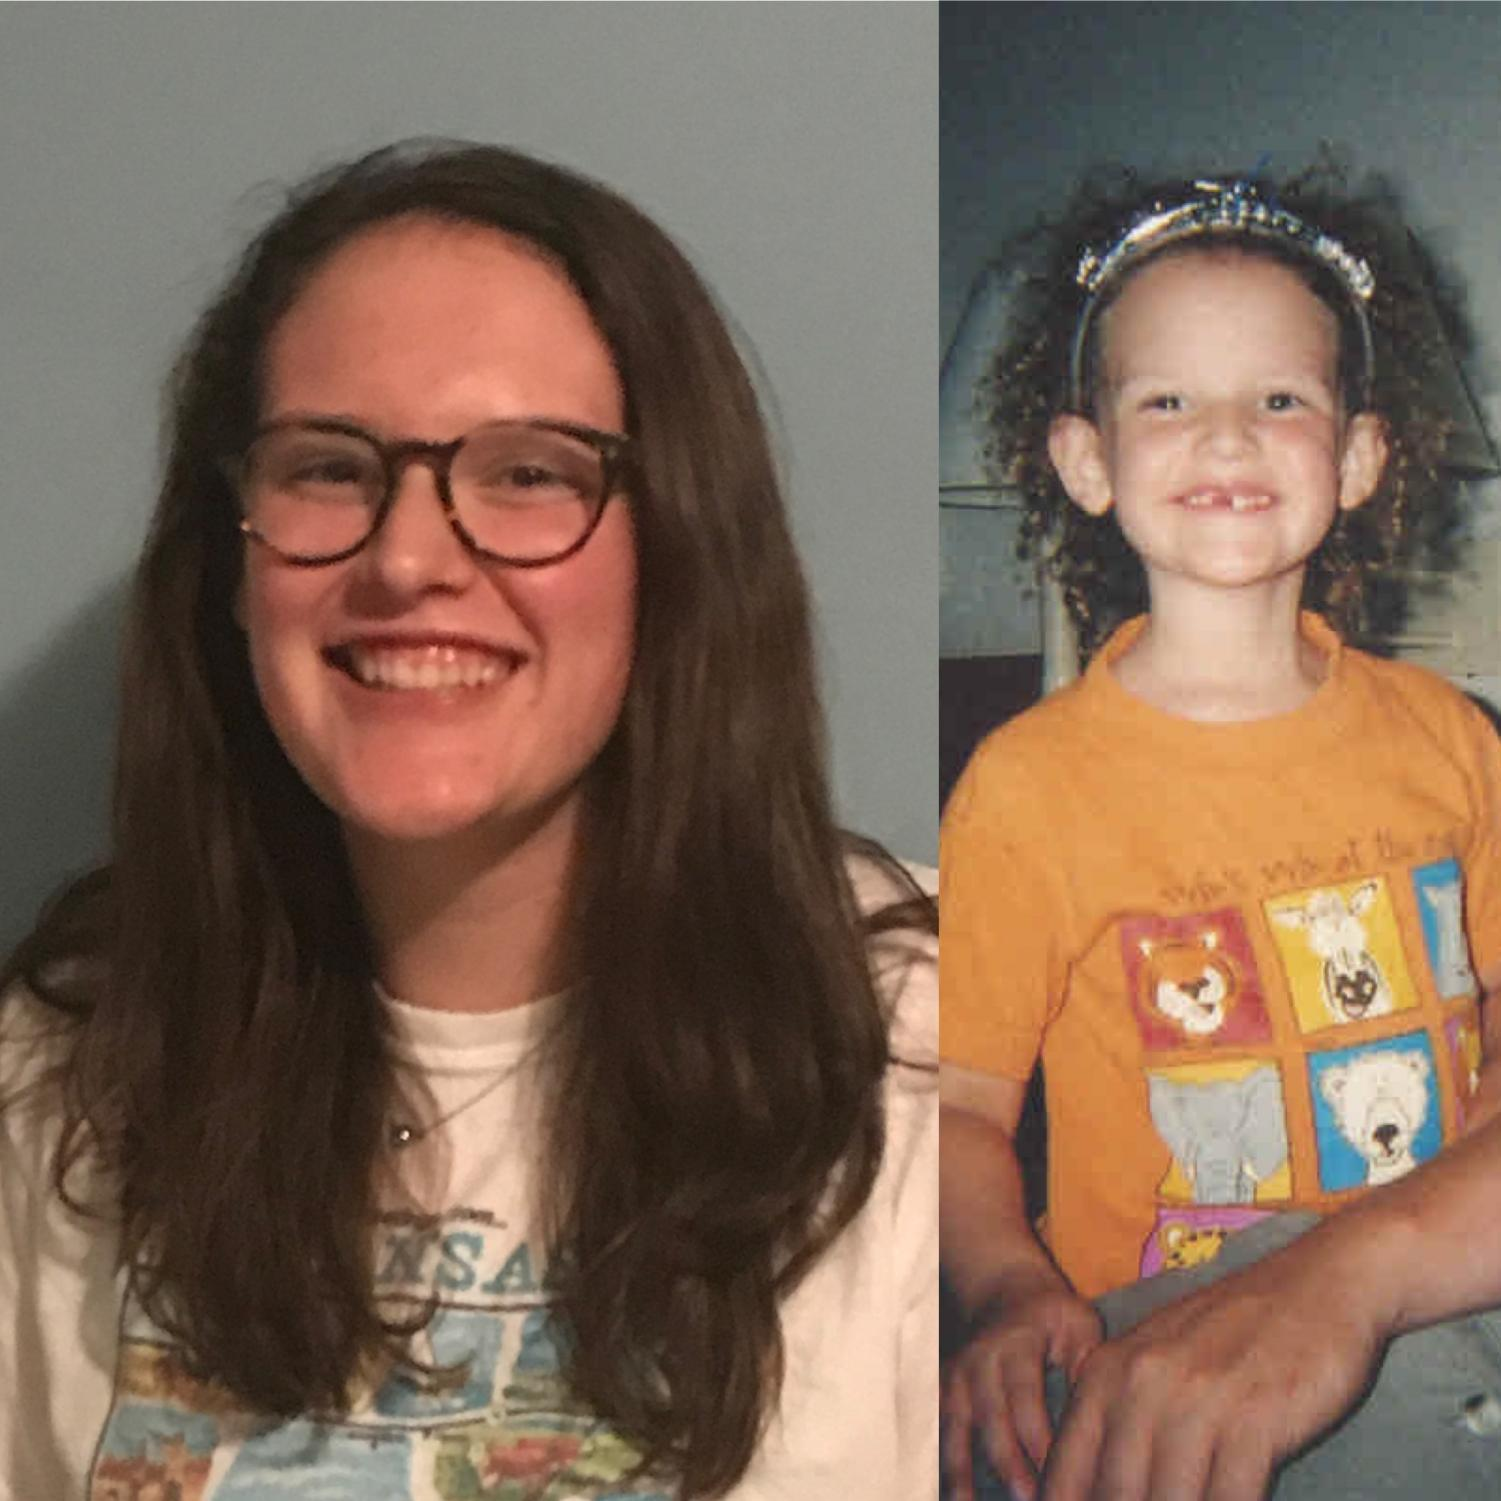 Me, today, with my straight(ish) hair, and me when I was three with my boingy curls (photos by CSmith).